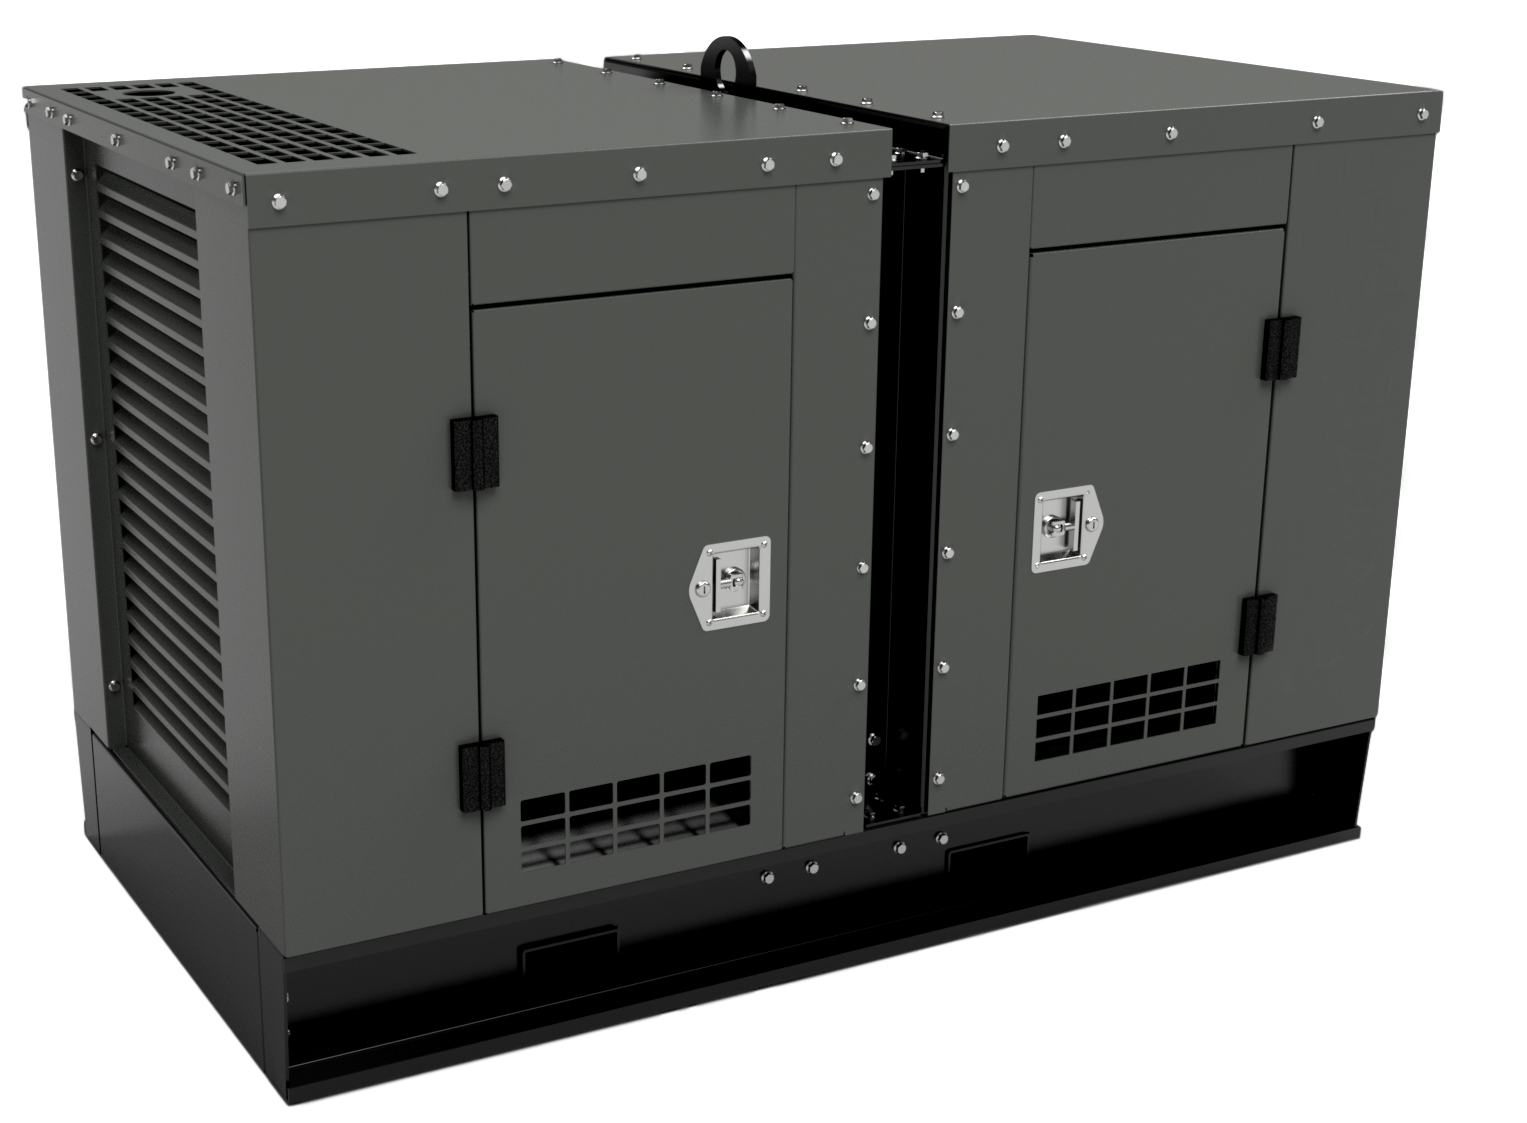 Custom Built Diesel Generators Usa And Canada Perkins Engines Dynagen Controllers And Linz Electric Altern Diesel Generators Small Diesel Generator Diesel